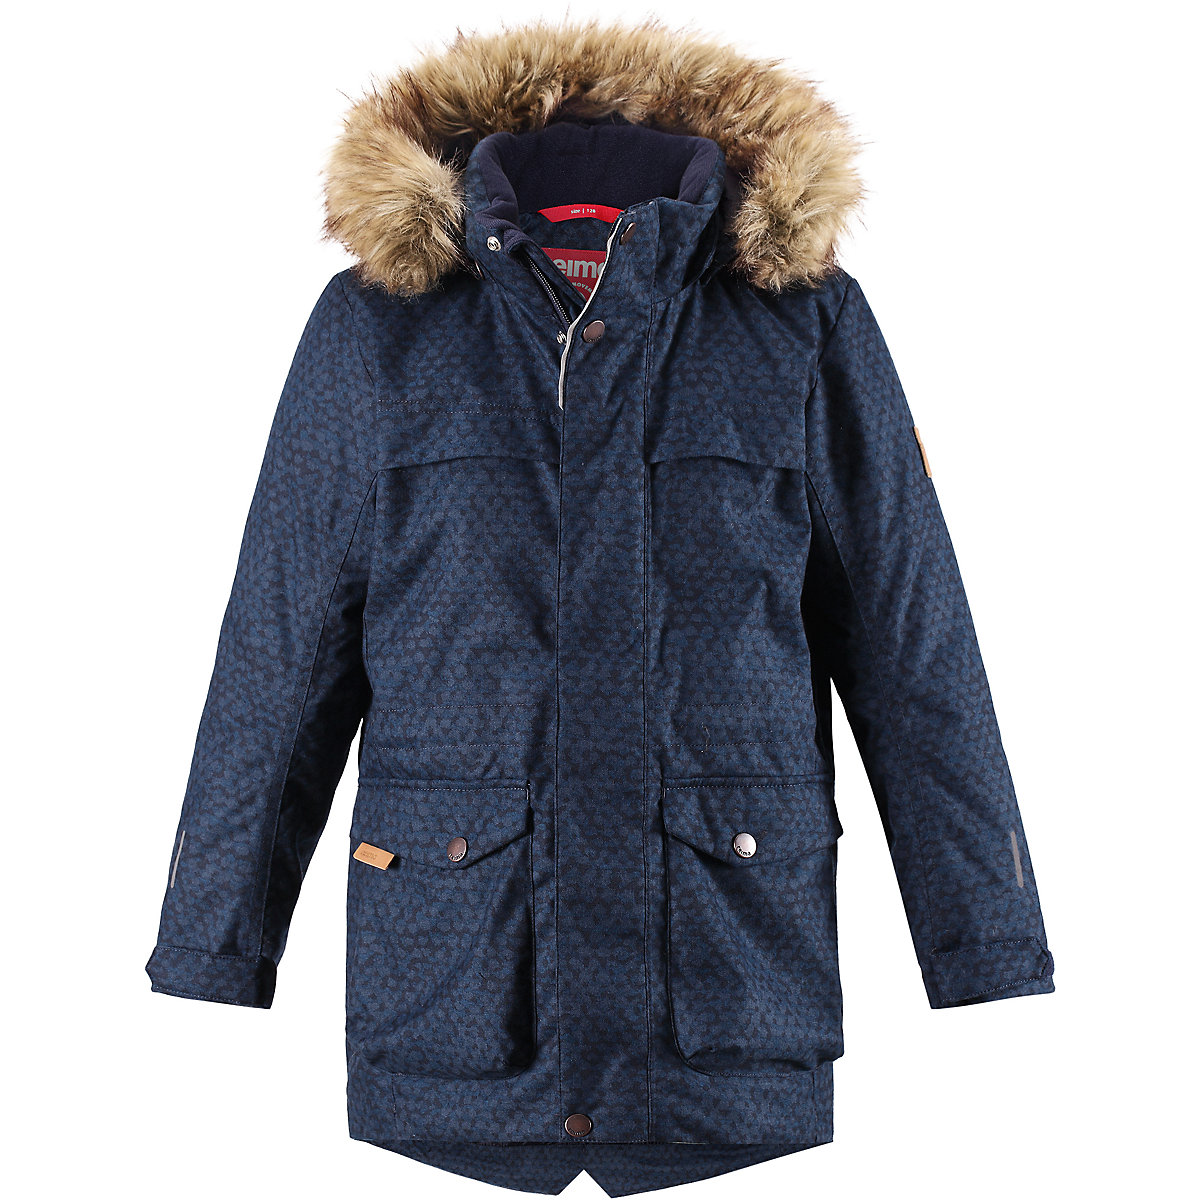 REIMA Jackets 8665451 for boys polyester winter  fur clothes boy vector brand ski jackets men outdoor thermal waterproof snowboard skiing jackets climbing snow winter clothes hxf70002